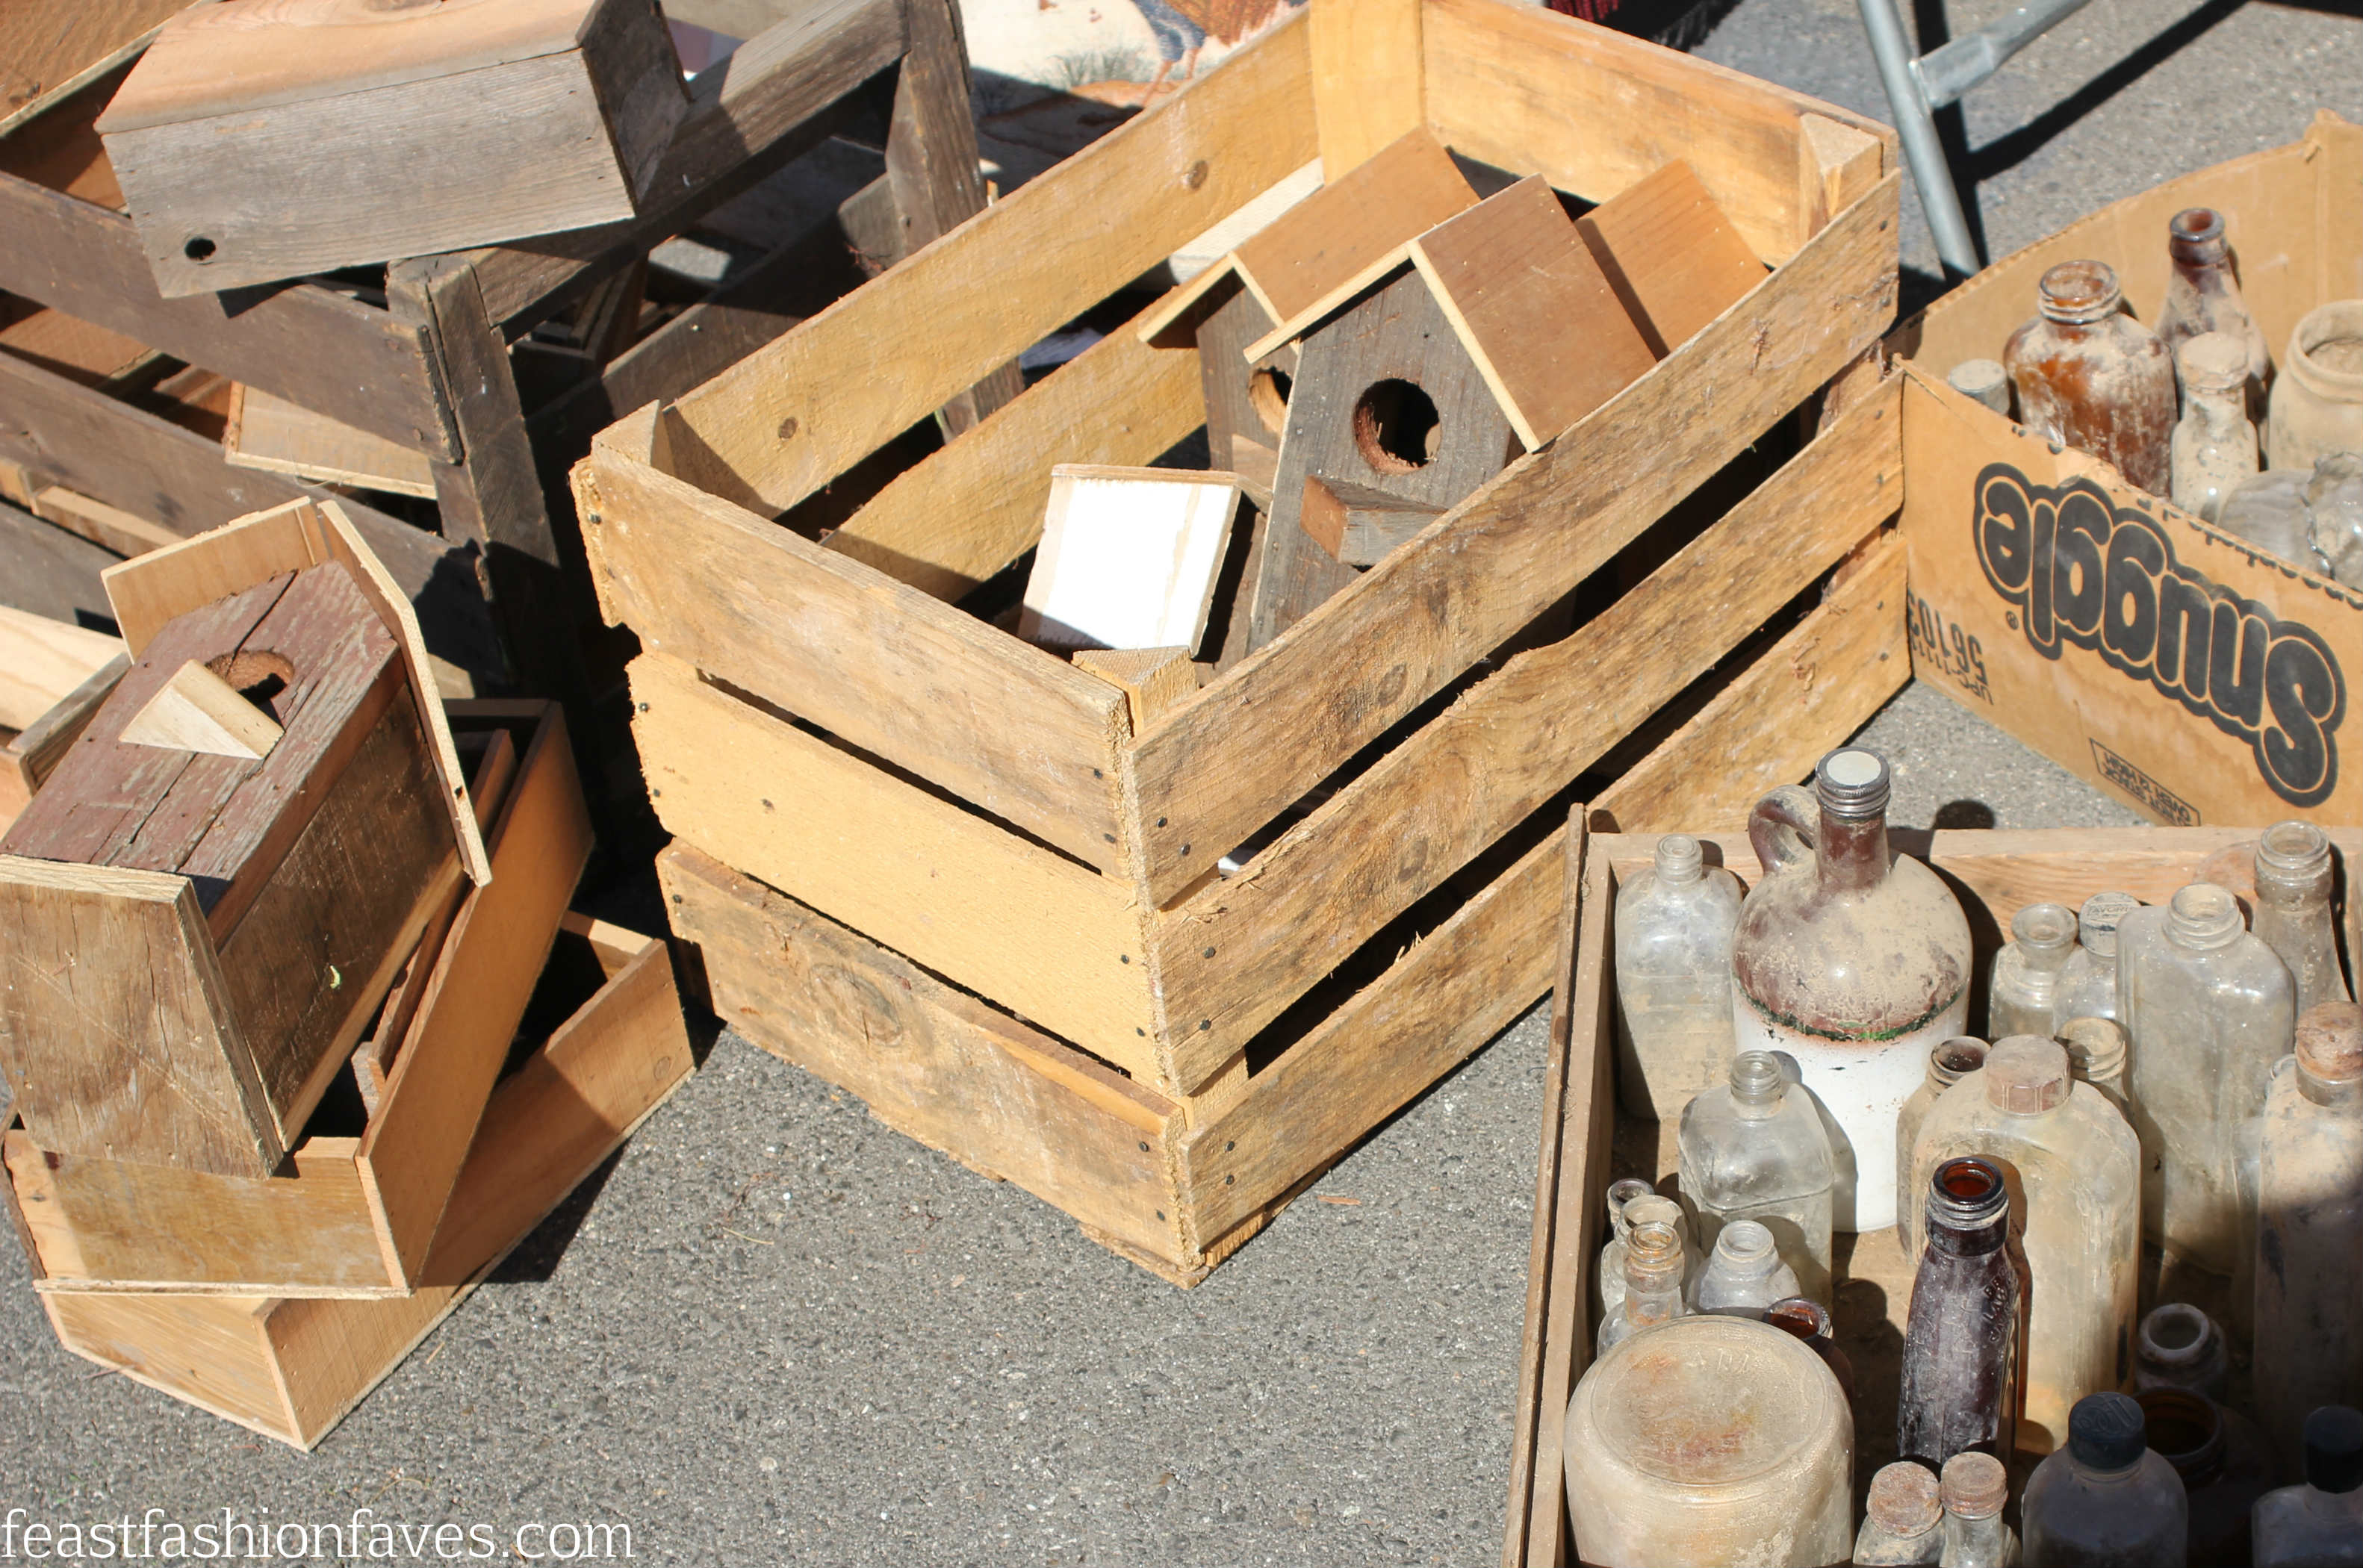 Flea Markets in Irvine | Locations, Resources & Times